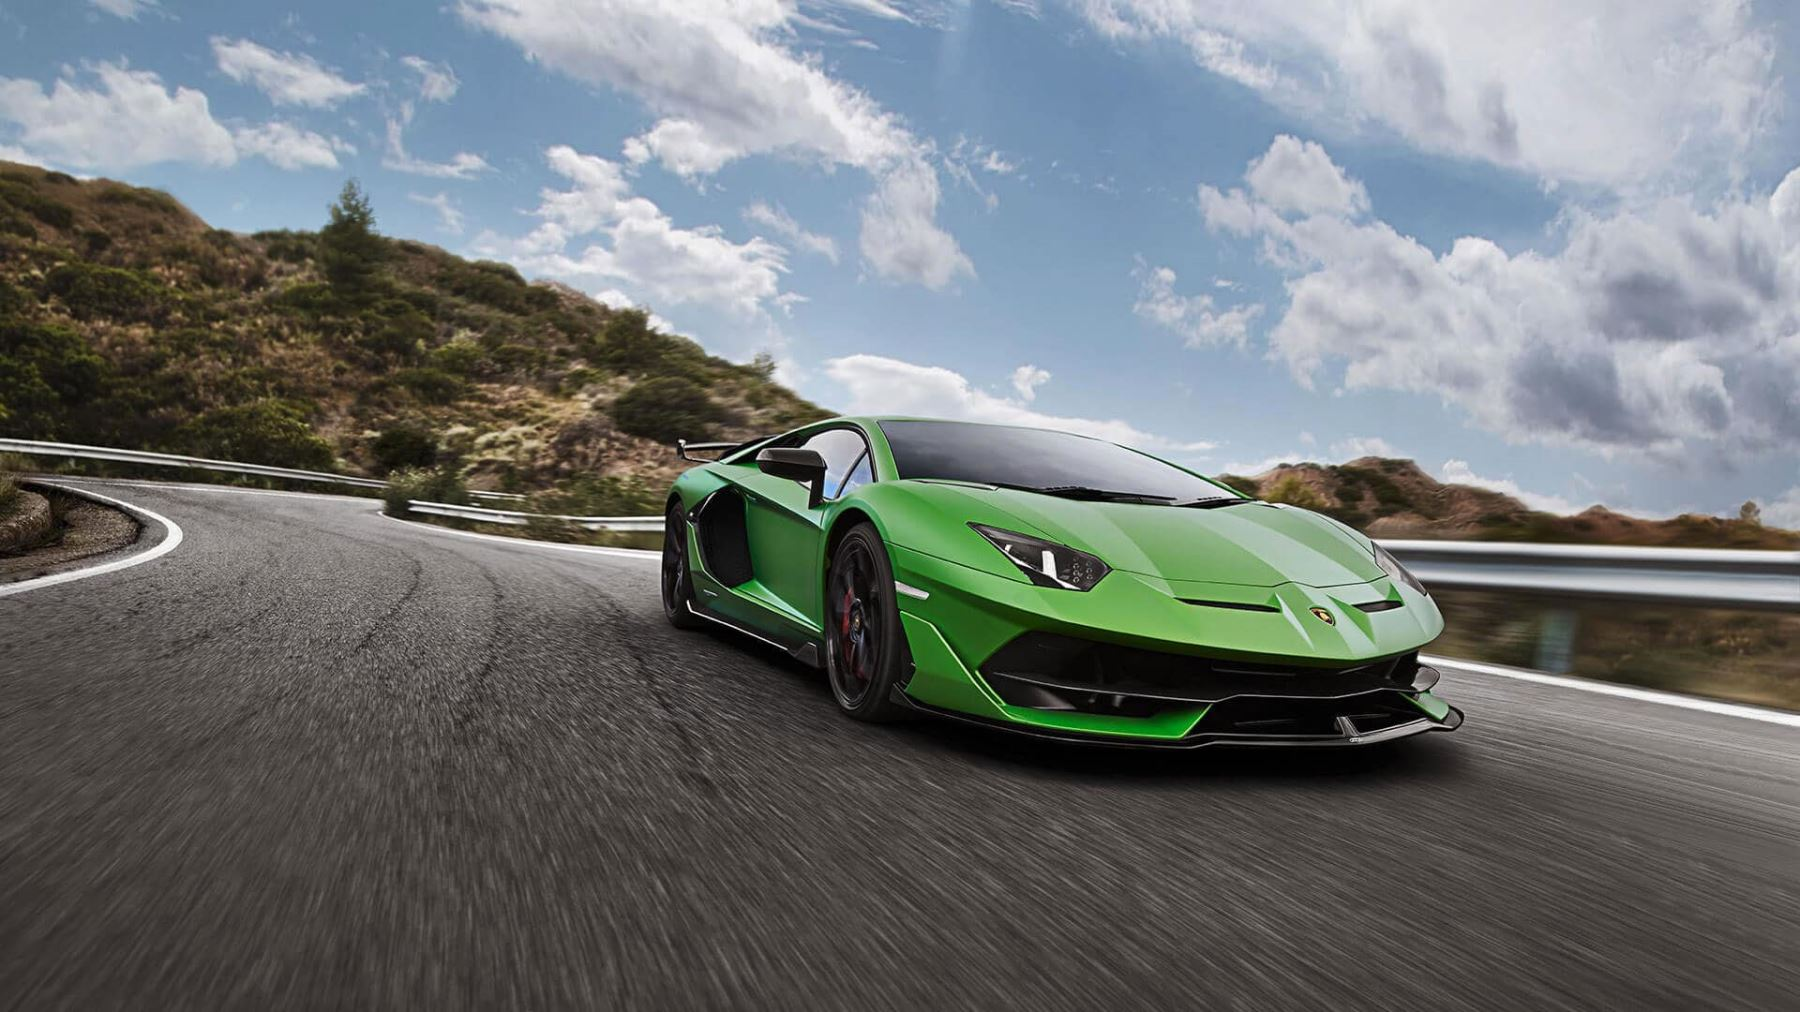 Lamborghini Aventador SVJ Coupe - Real Emotions Shape The Future image 8